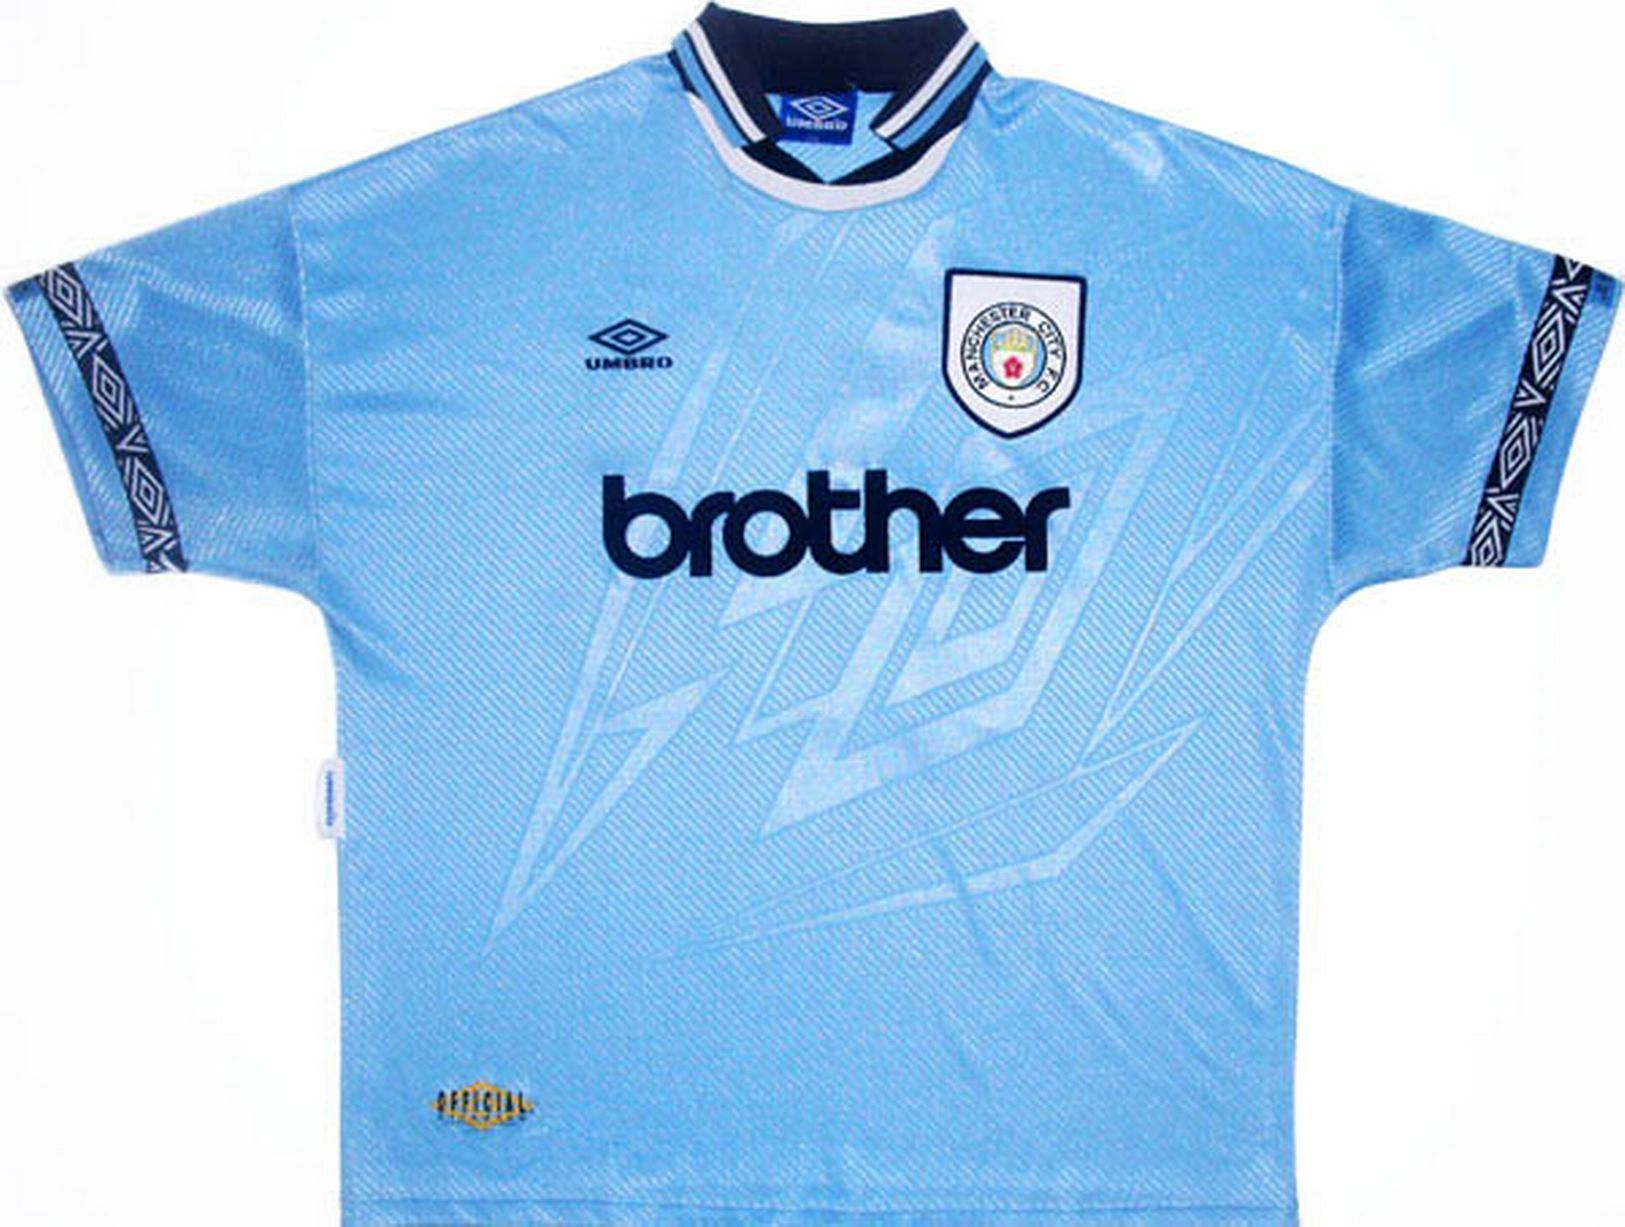 01e4993d990 Retro football shirts are a winner for Manchester firm